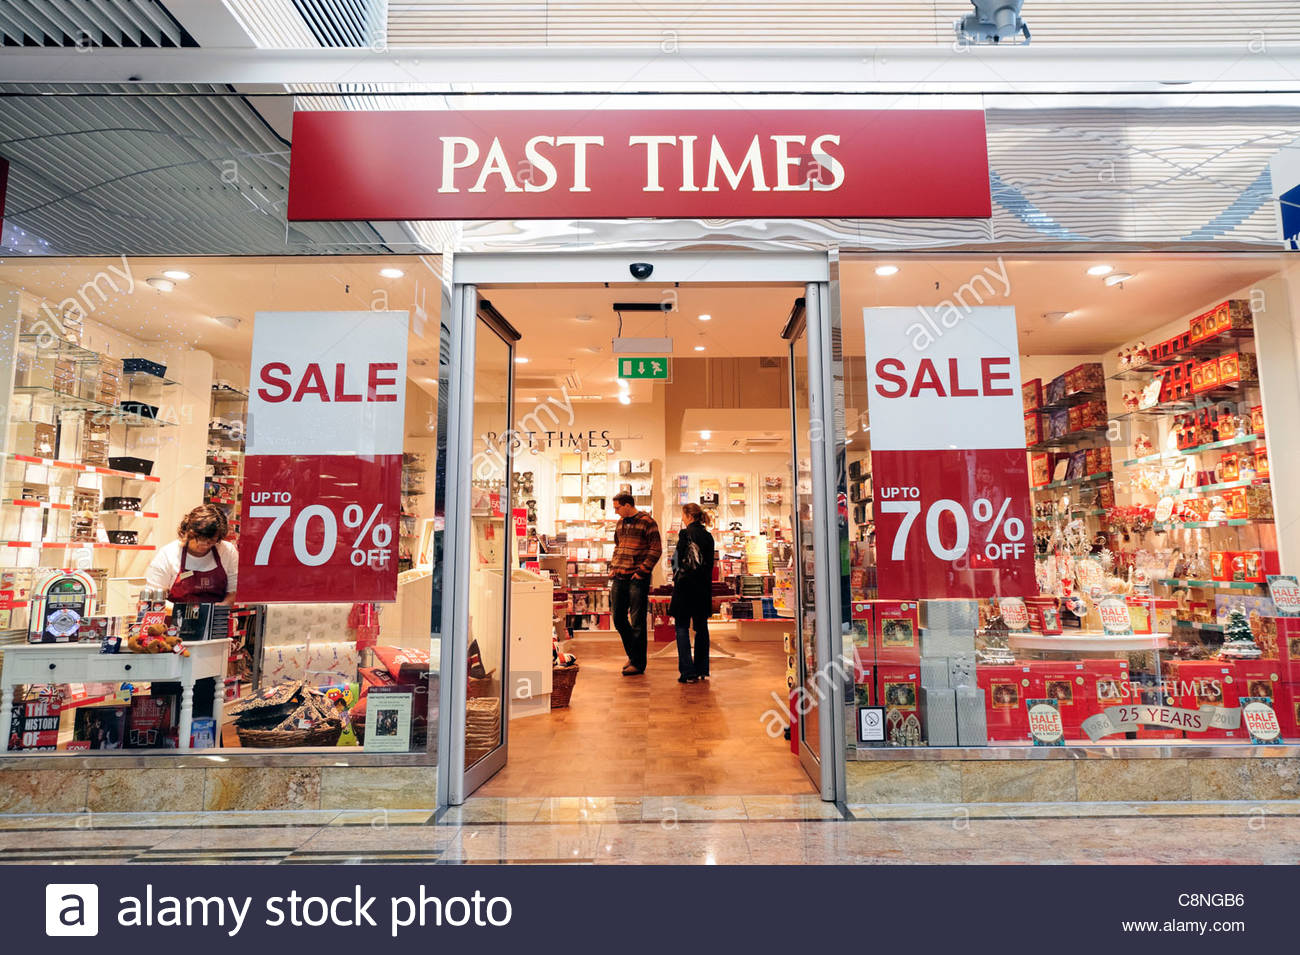 Past Times shop in Gloucester, UK. - Stock Image